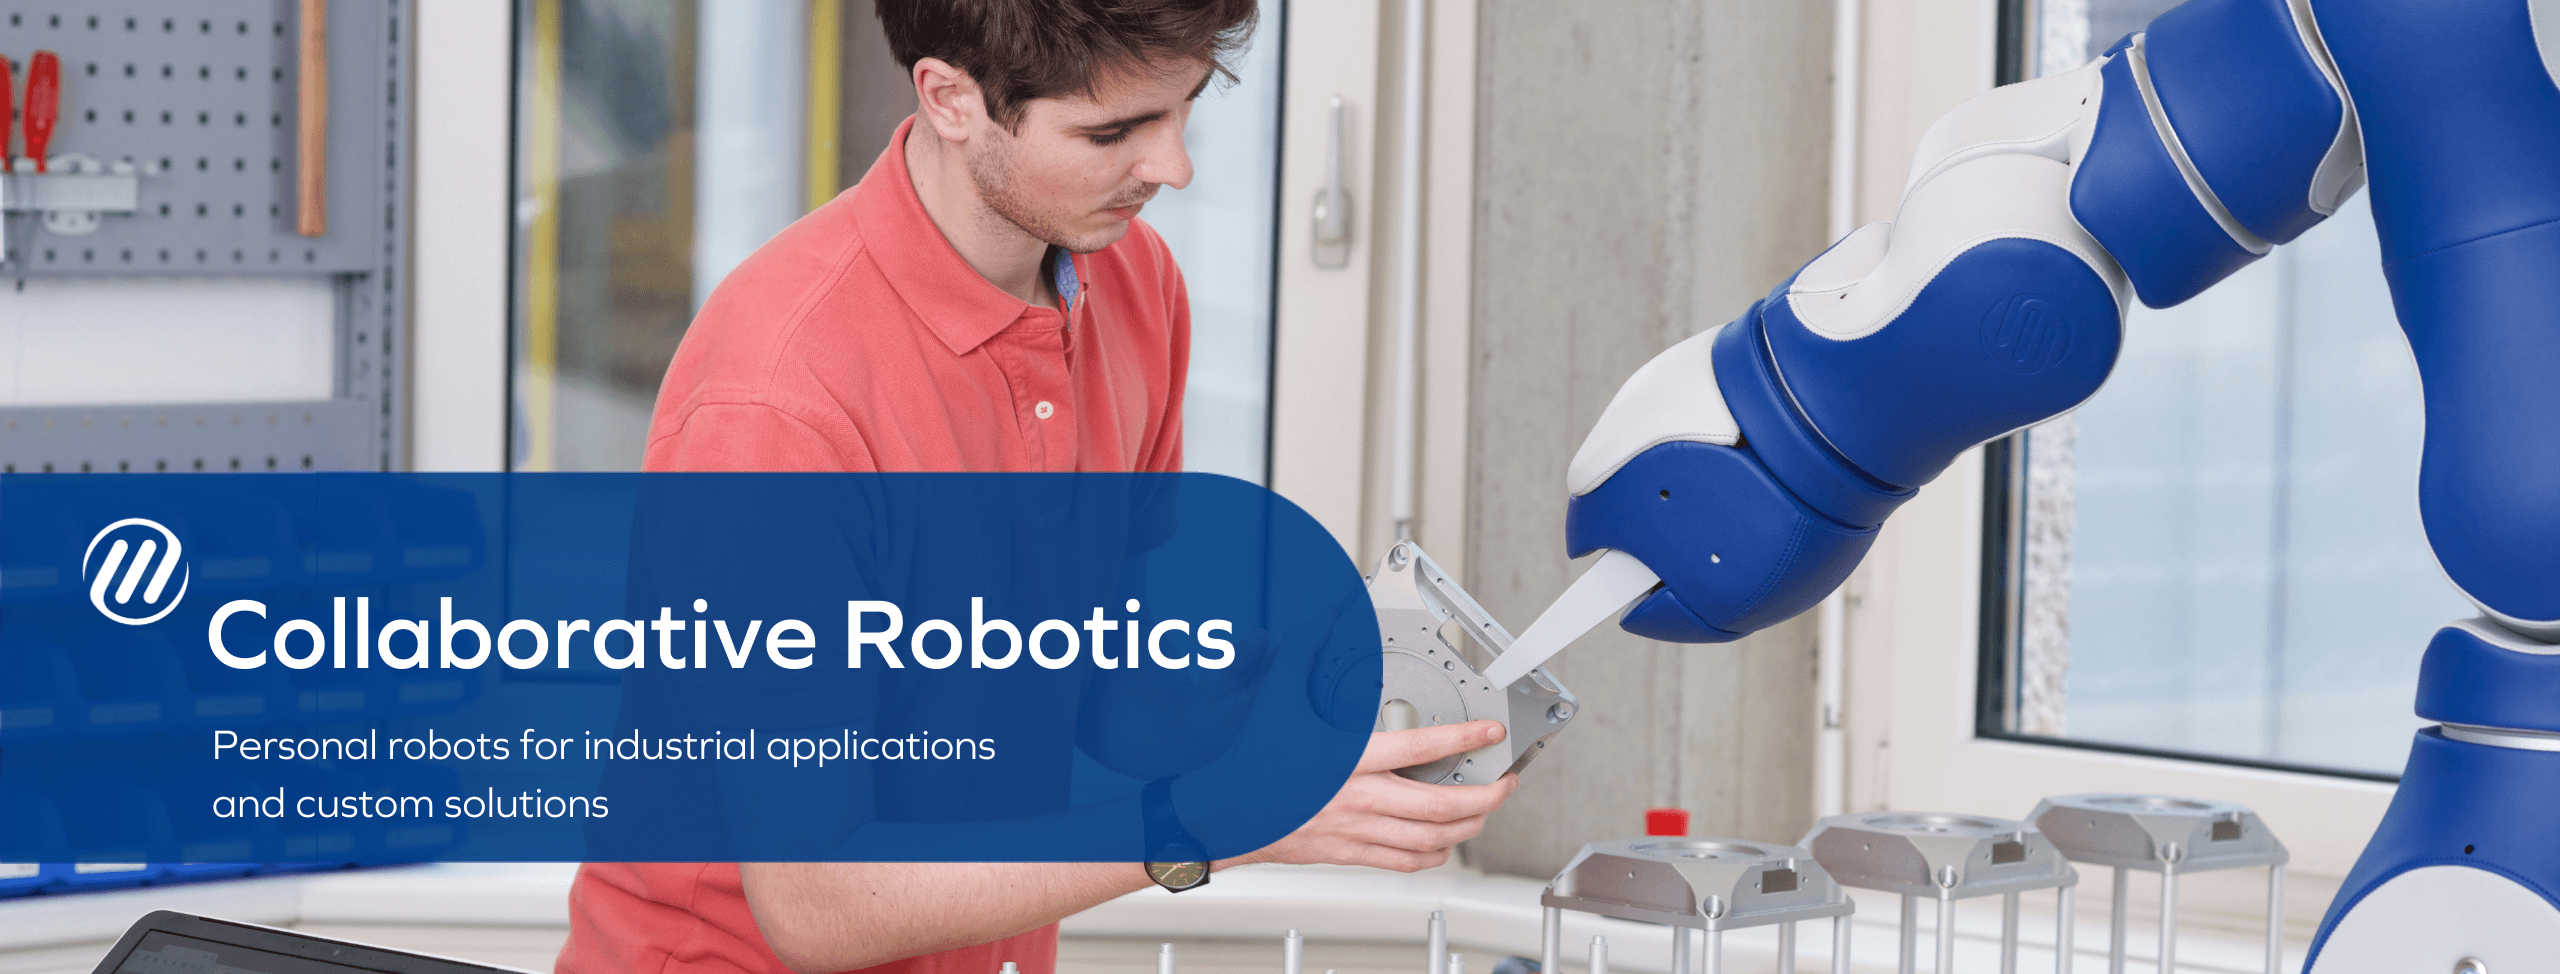 Collaborative Robotics - Personal robots for industrial applications and custom solutions